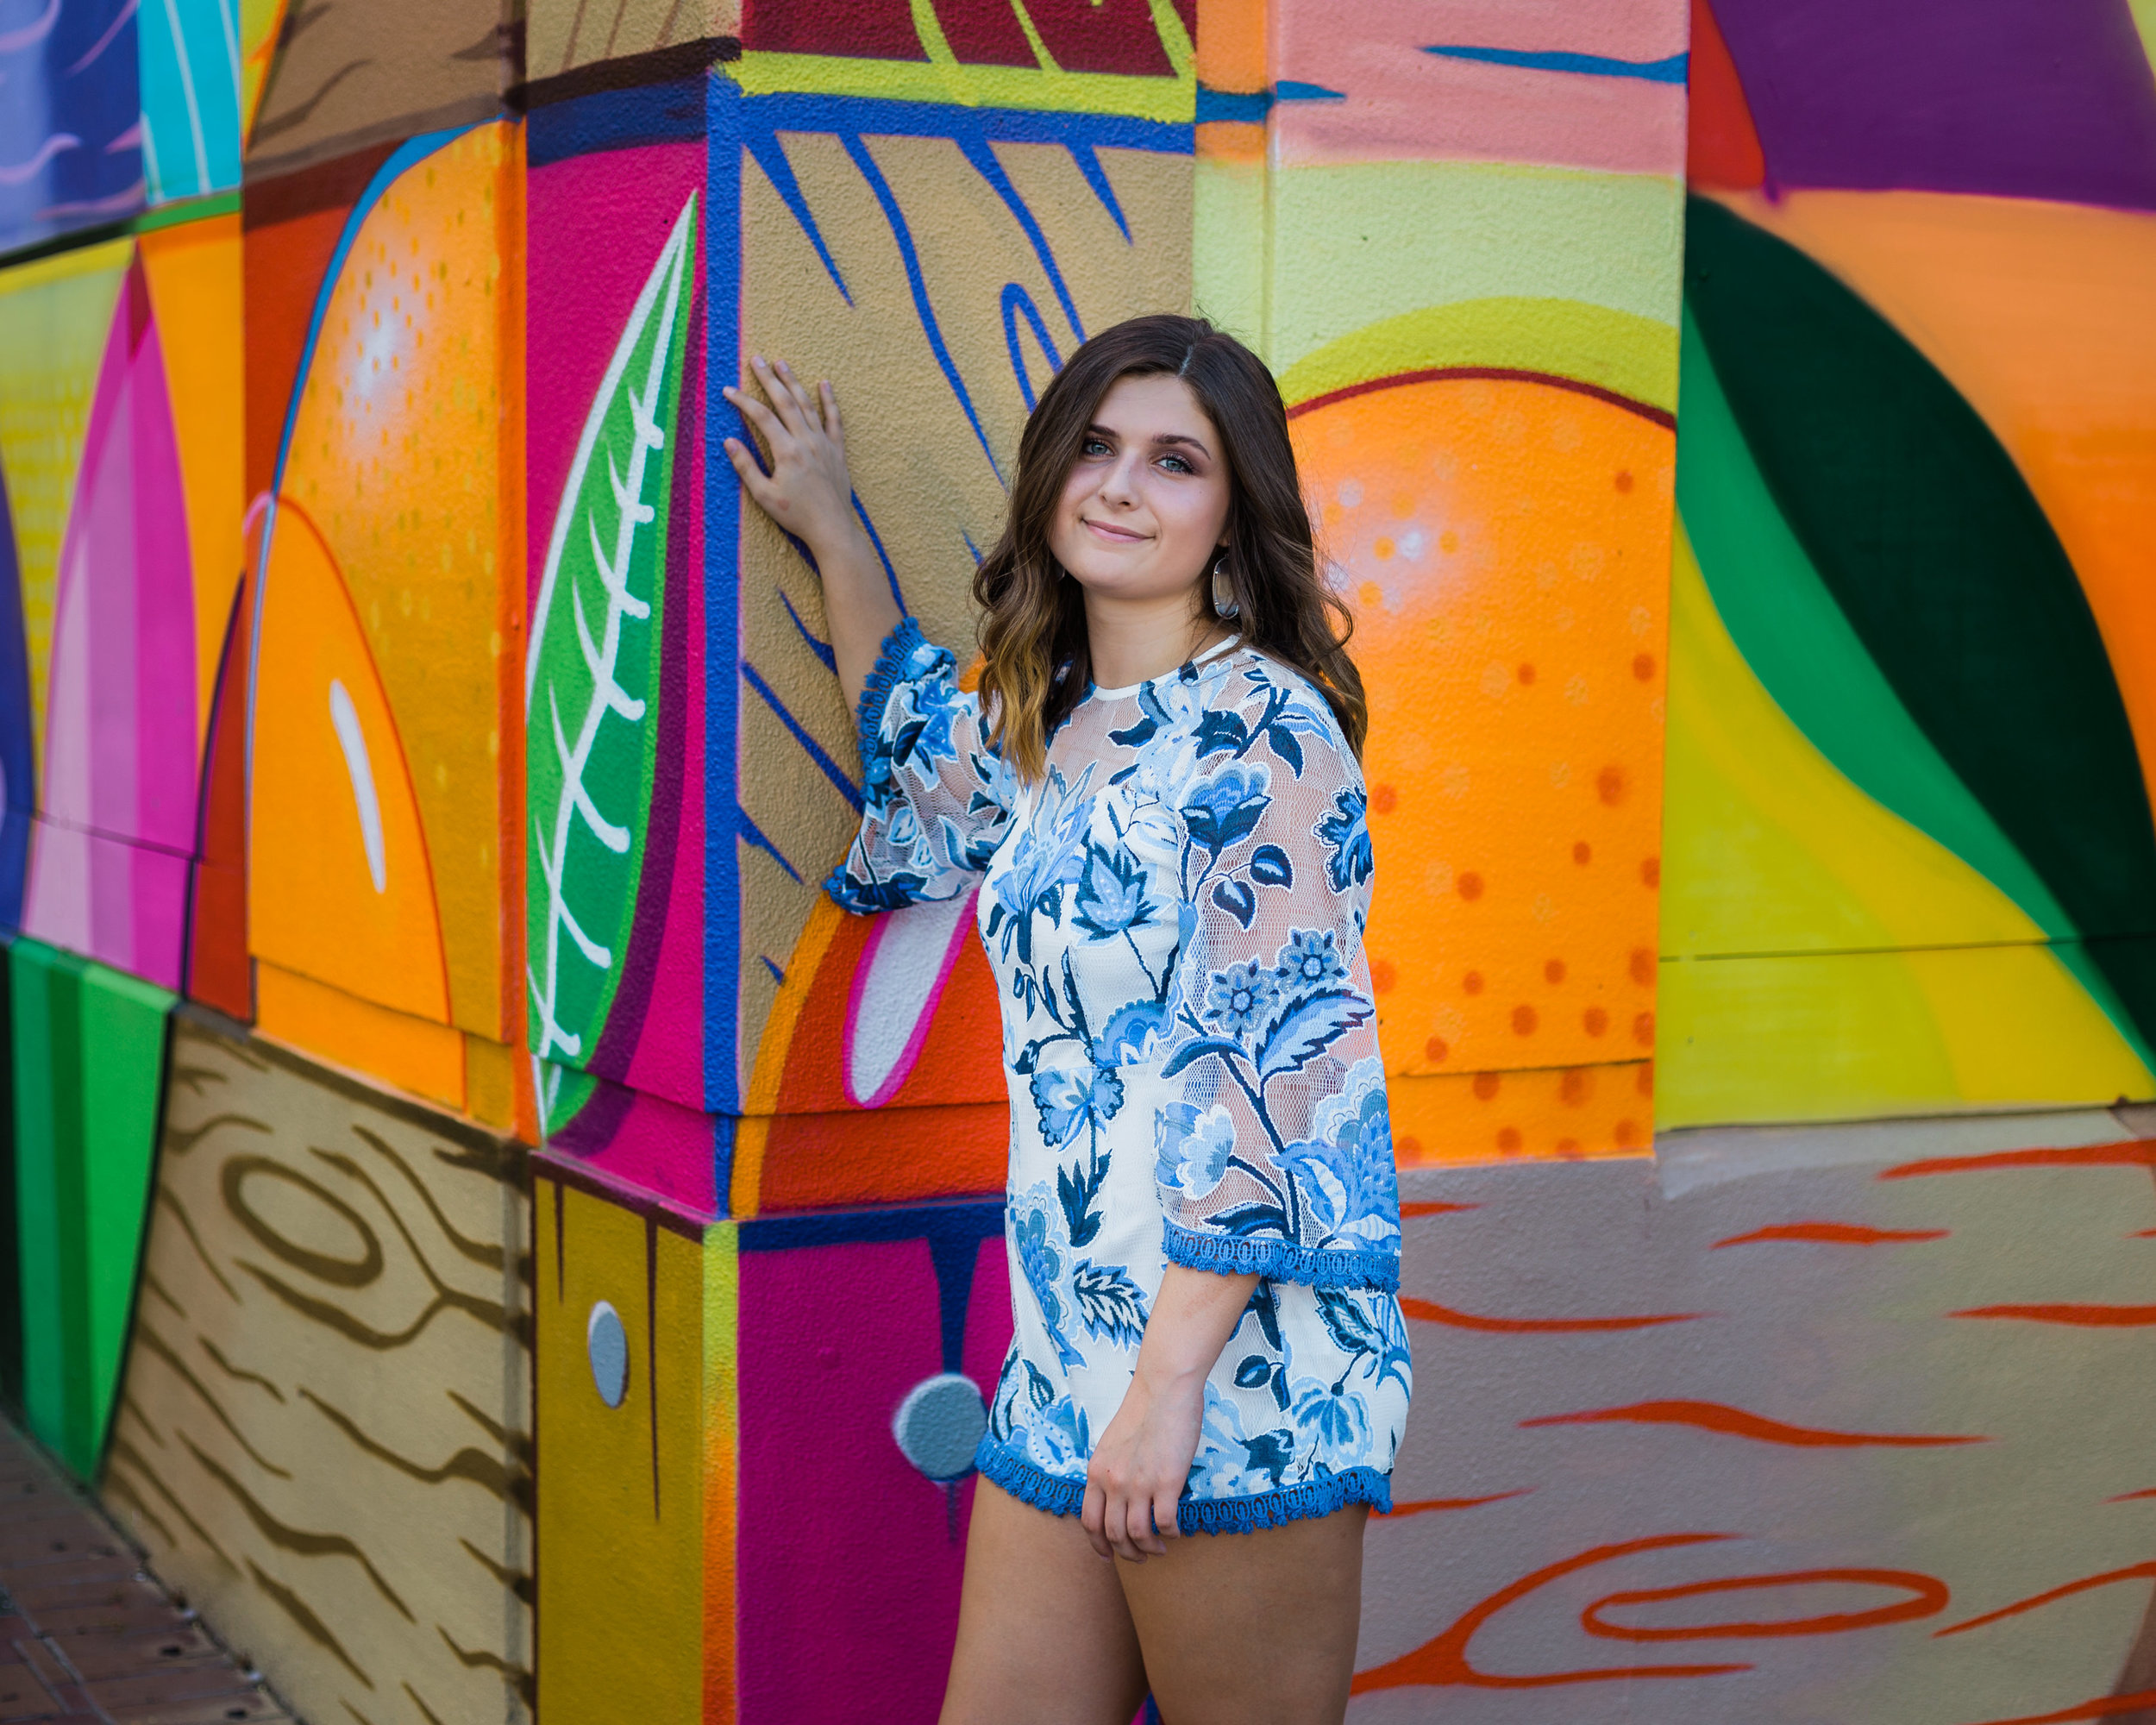 Senior girl in romper with bright urban painted wall